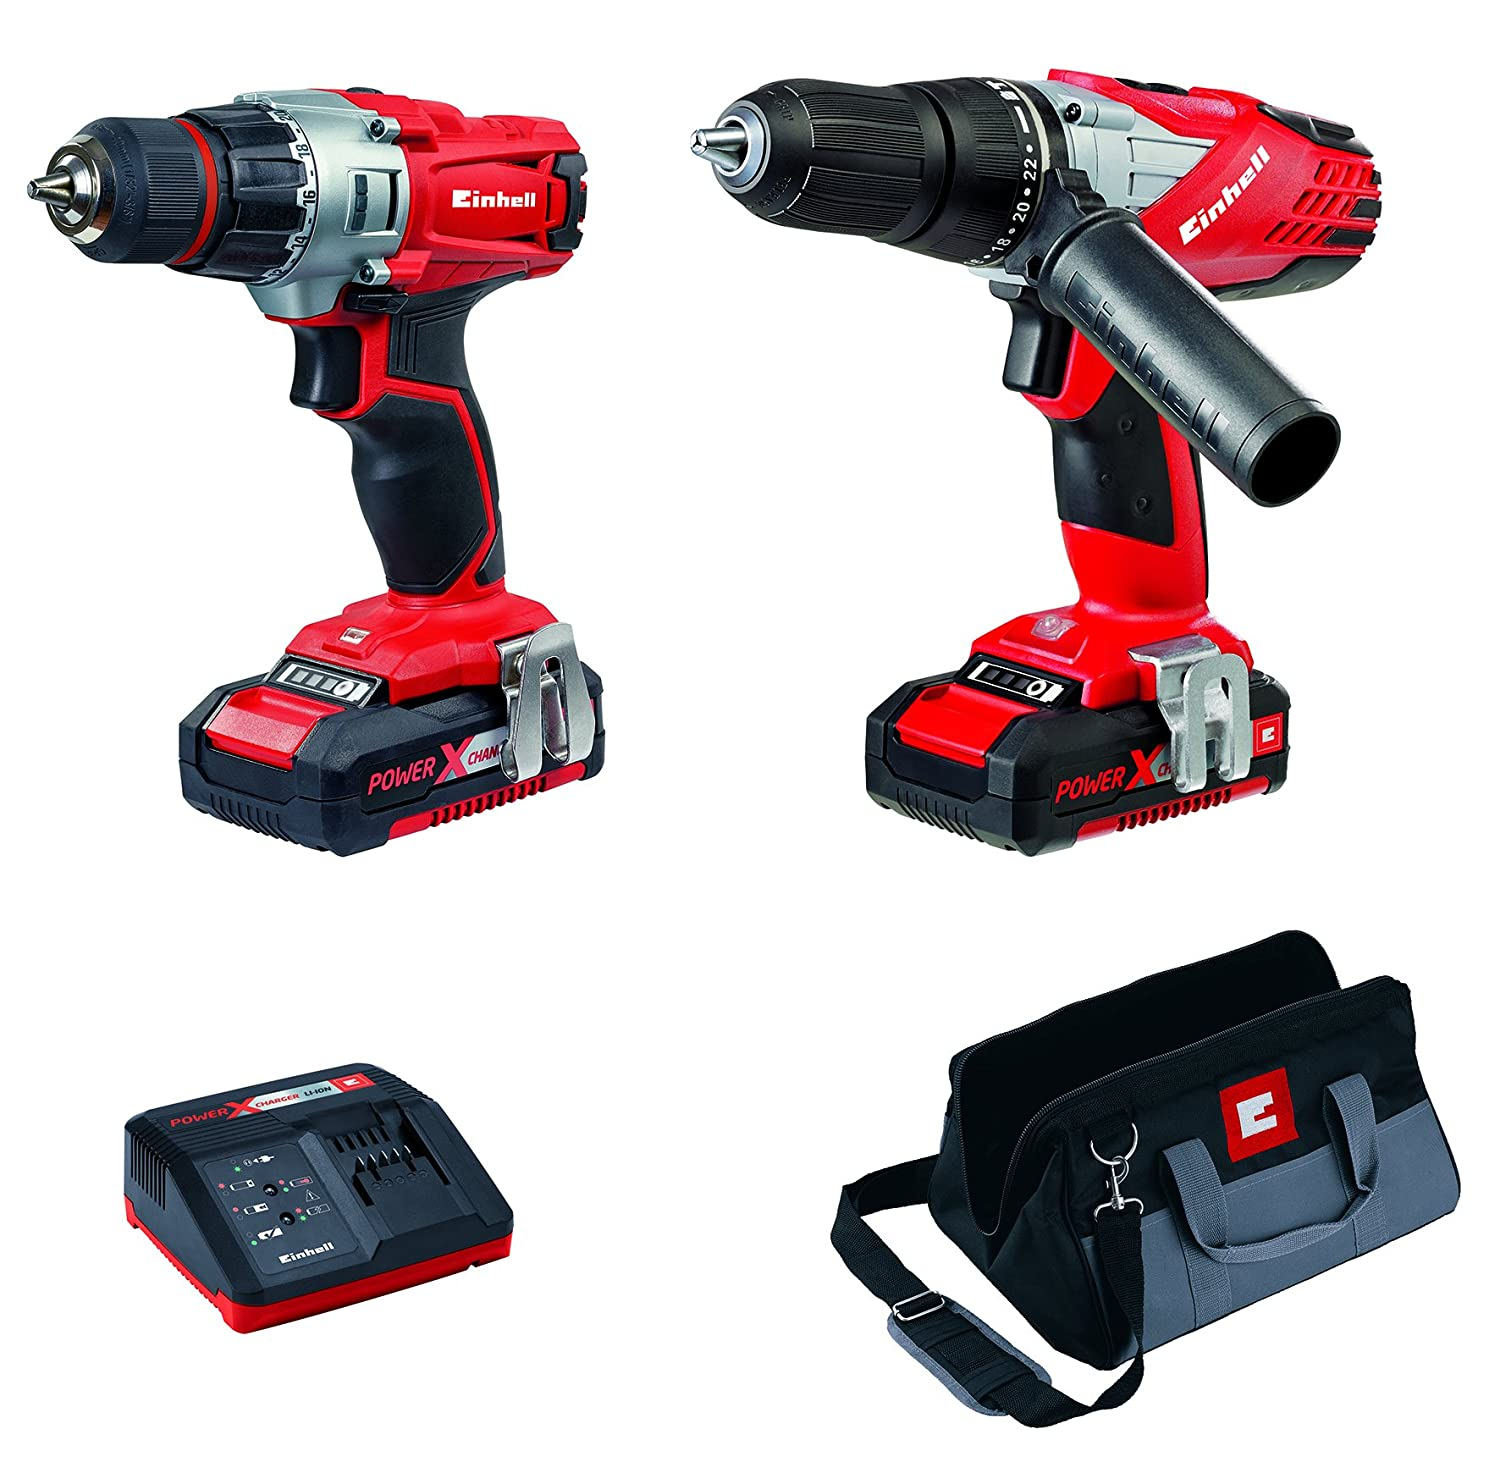 Einhell 4257200 Power X-Change Cordless Combi and Drill Driver, Twin Pack - Red